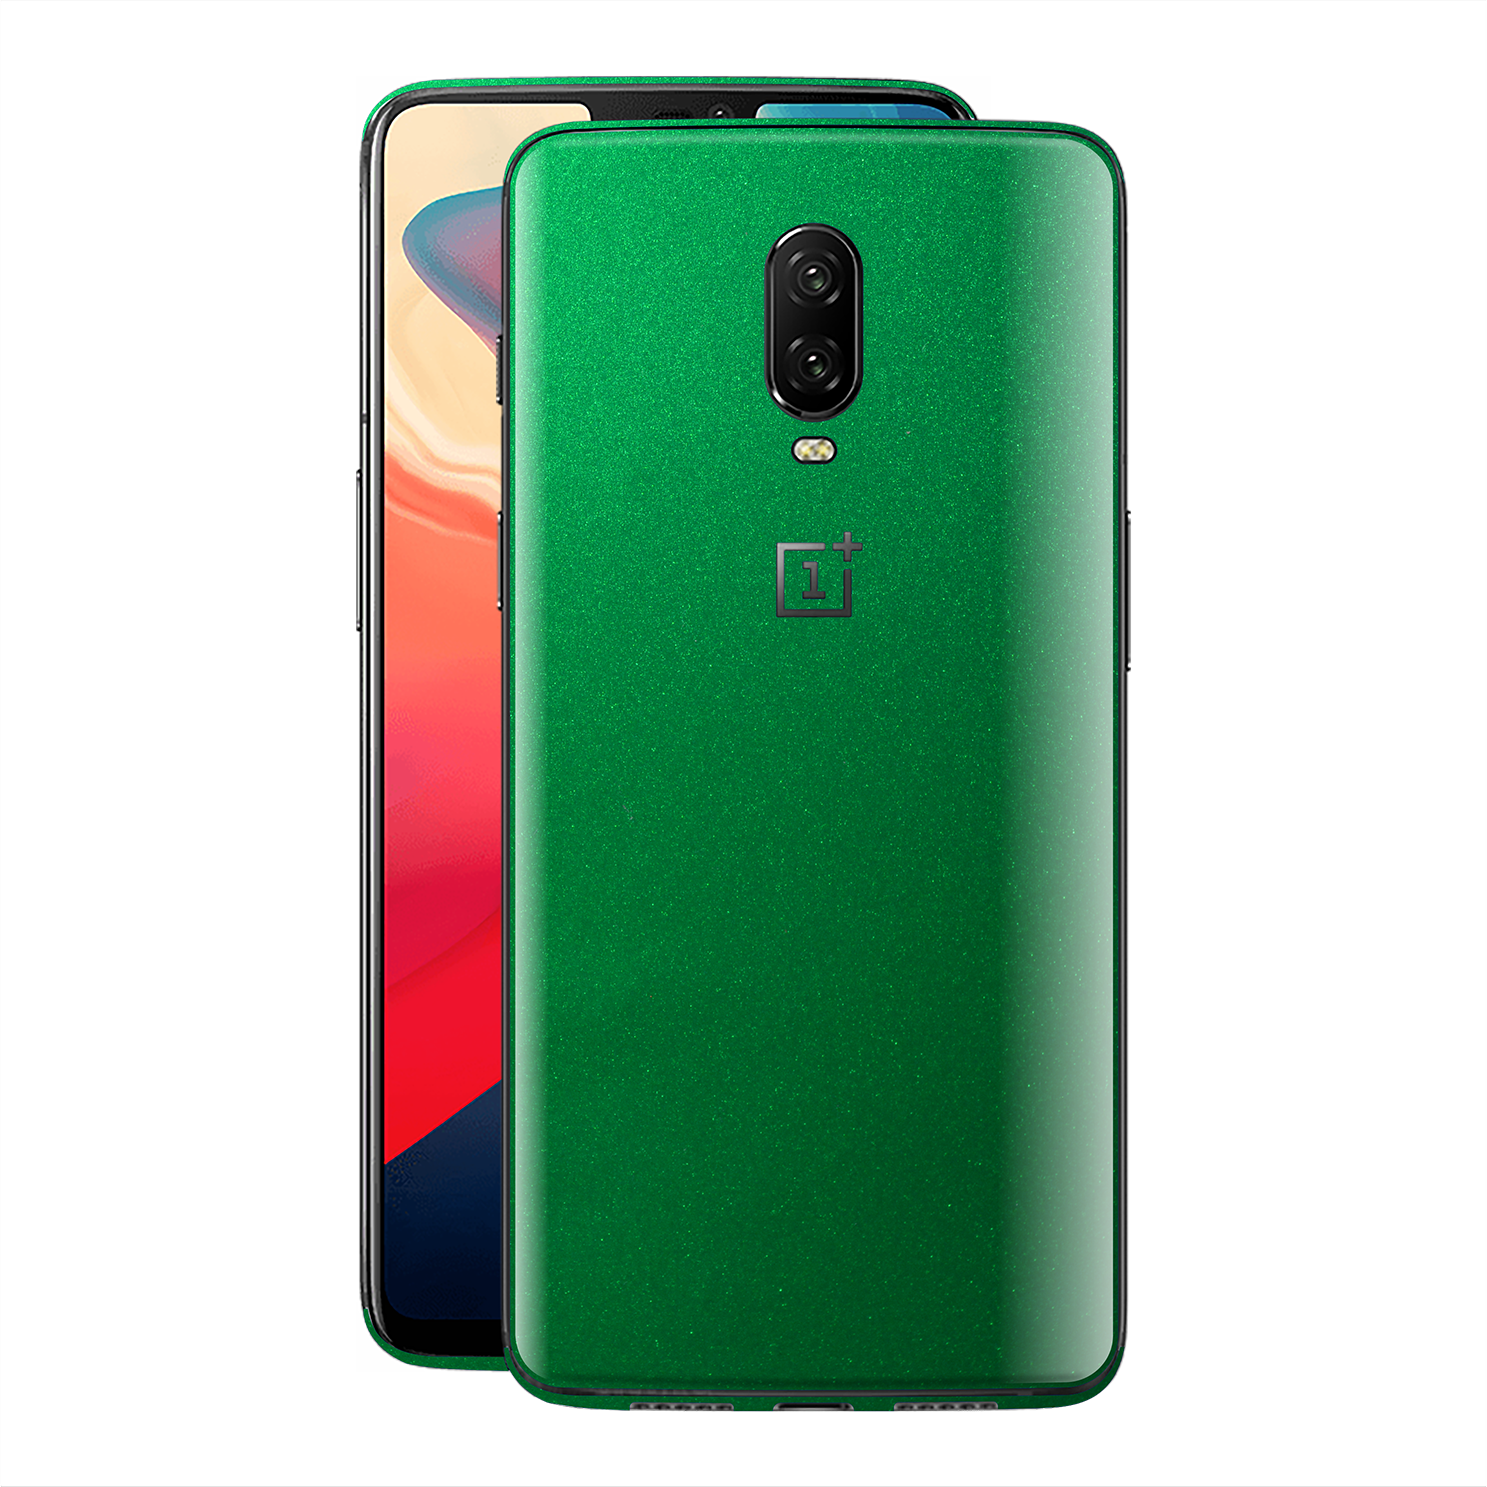 OnePlus 6T Viper Green Tuning Glossy Gloss Finish Skin, Decal, Wrap, Protector, Cover by EasySkinz | EasySkinz.com